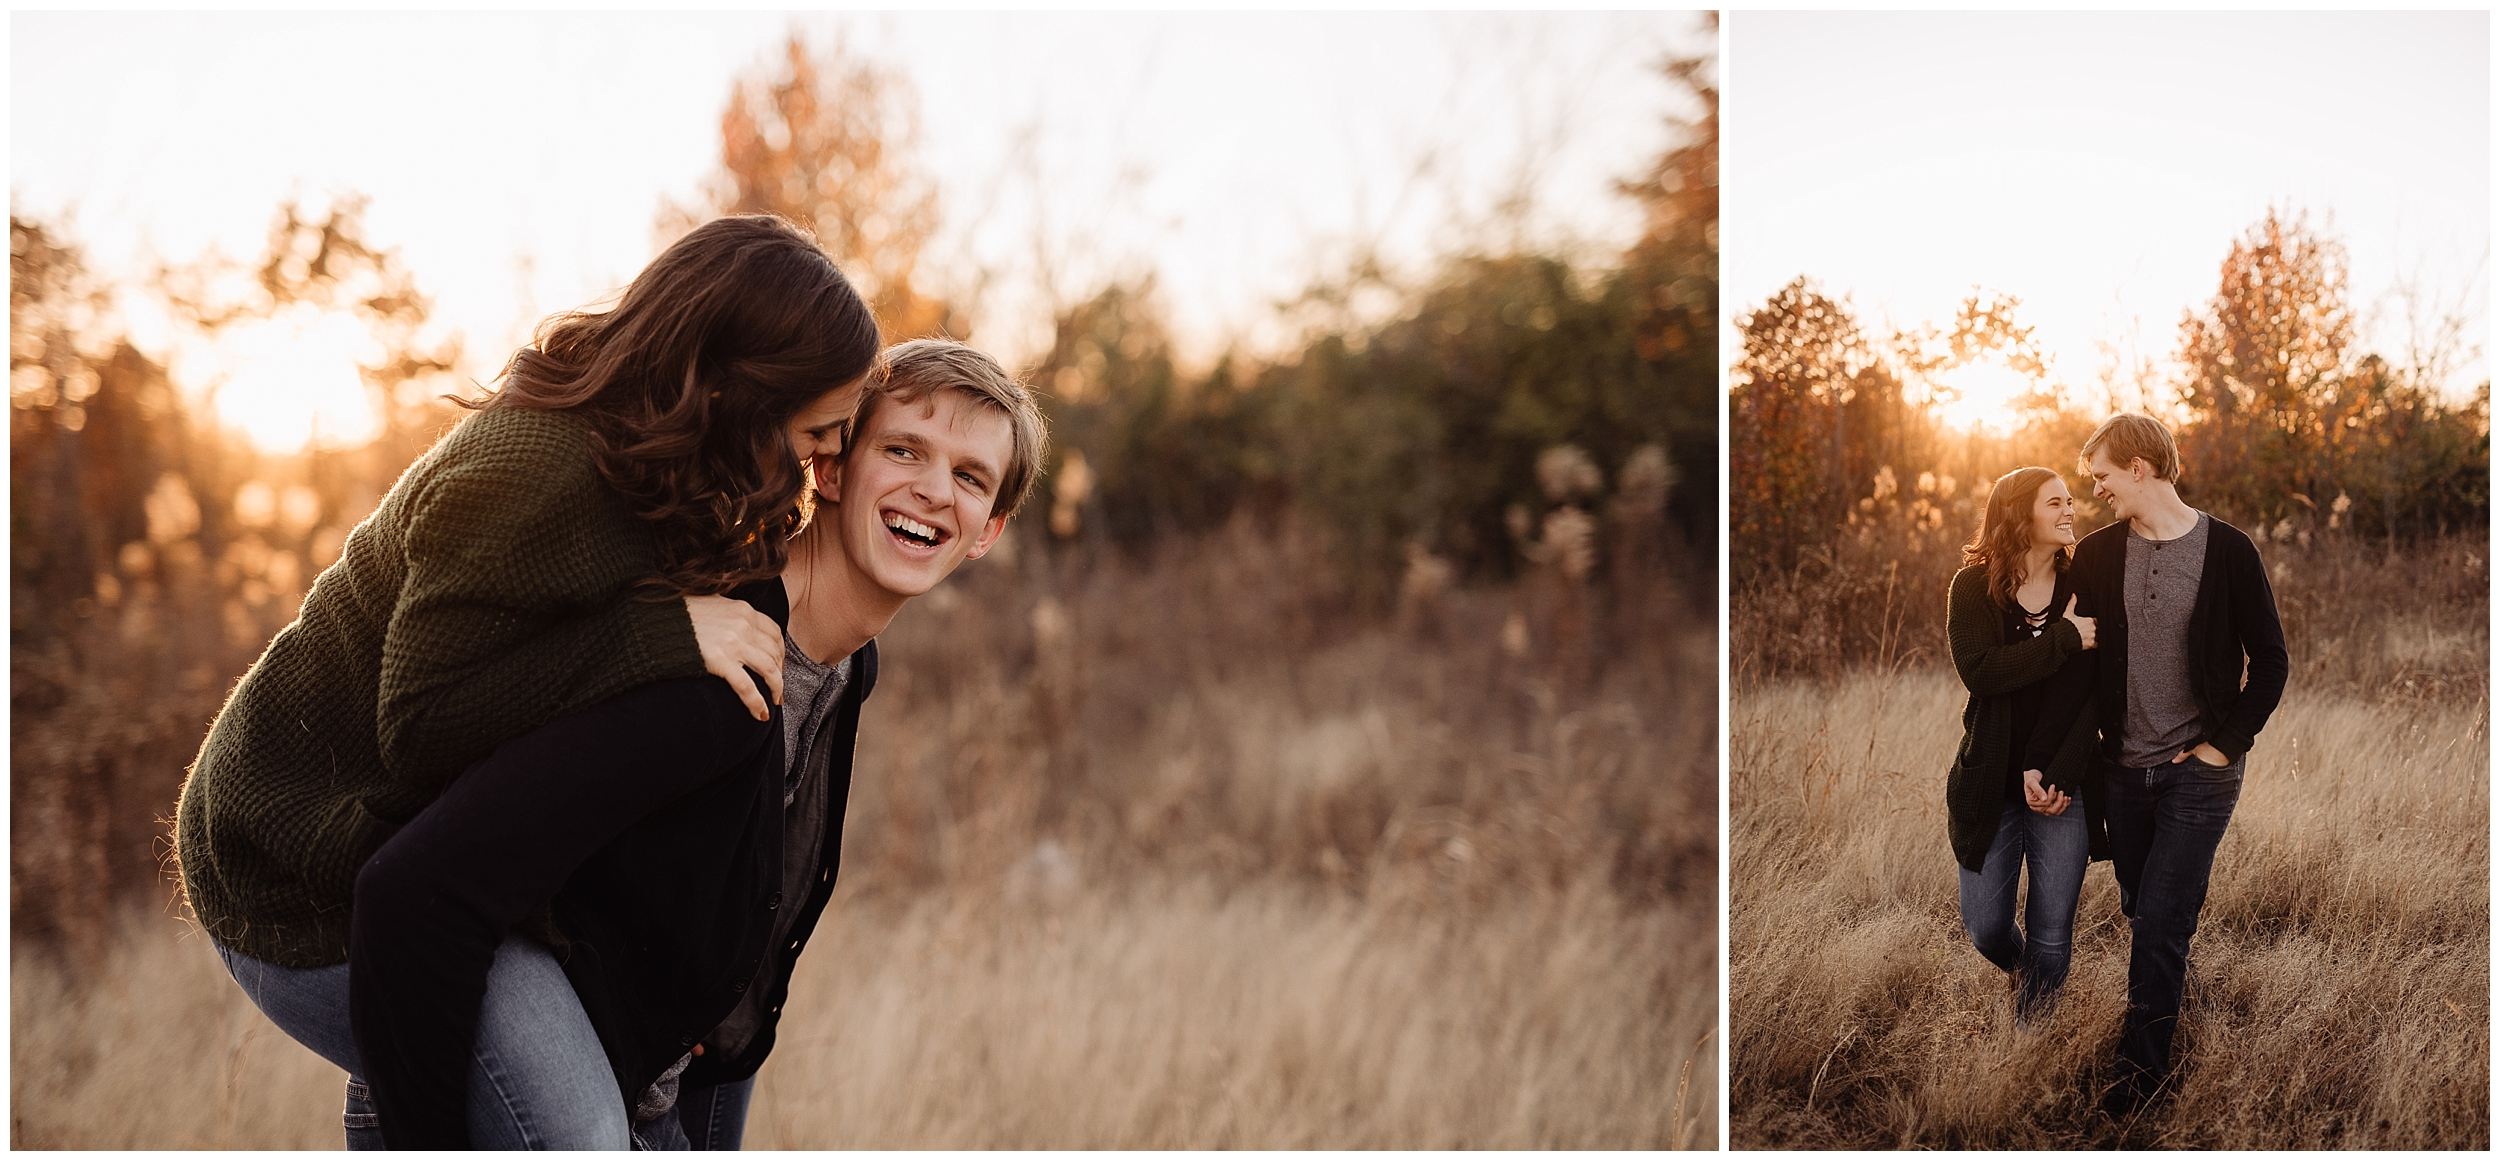 engagement photos session oklahoma wedding photographer outdoors fall edmond okc norman field sweater